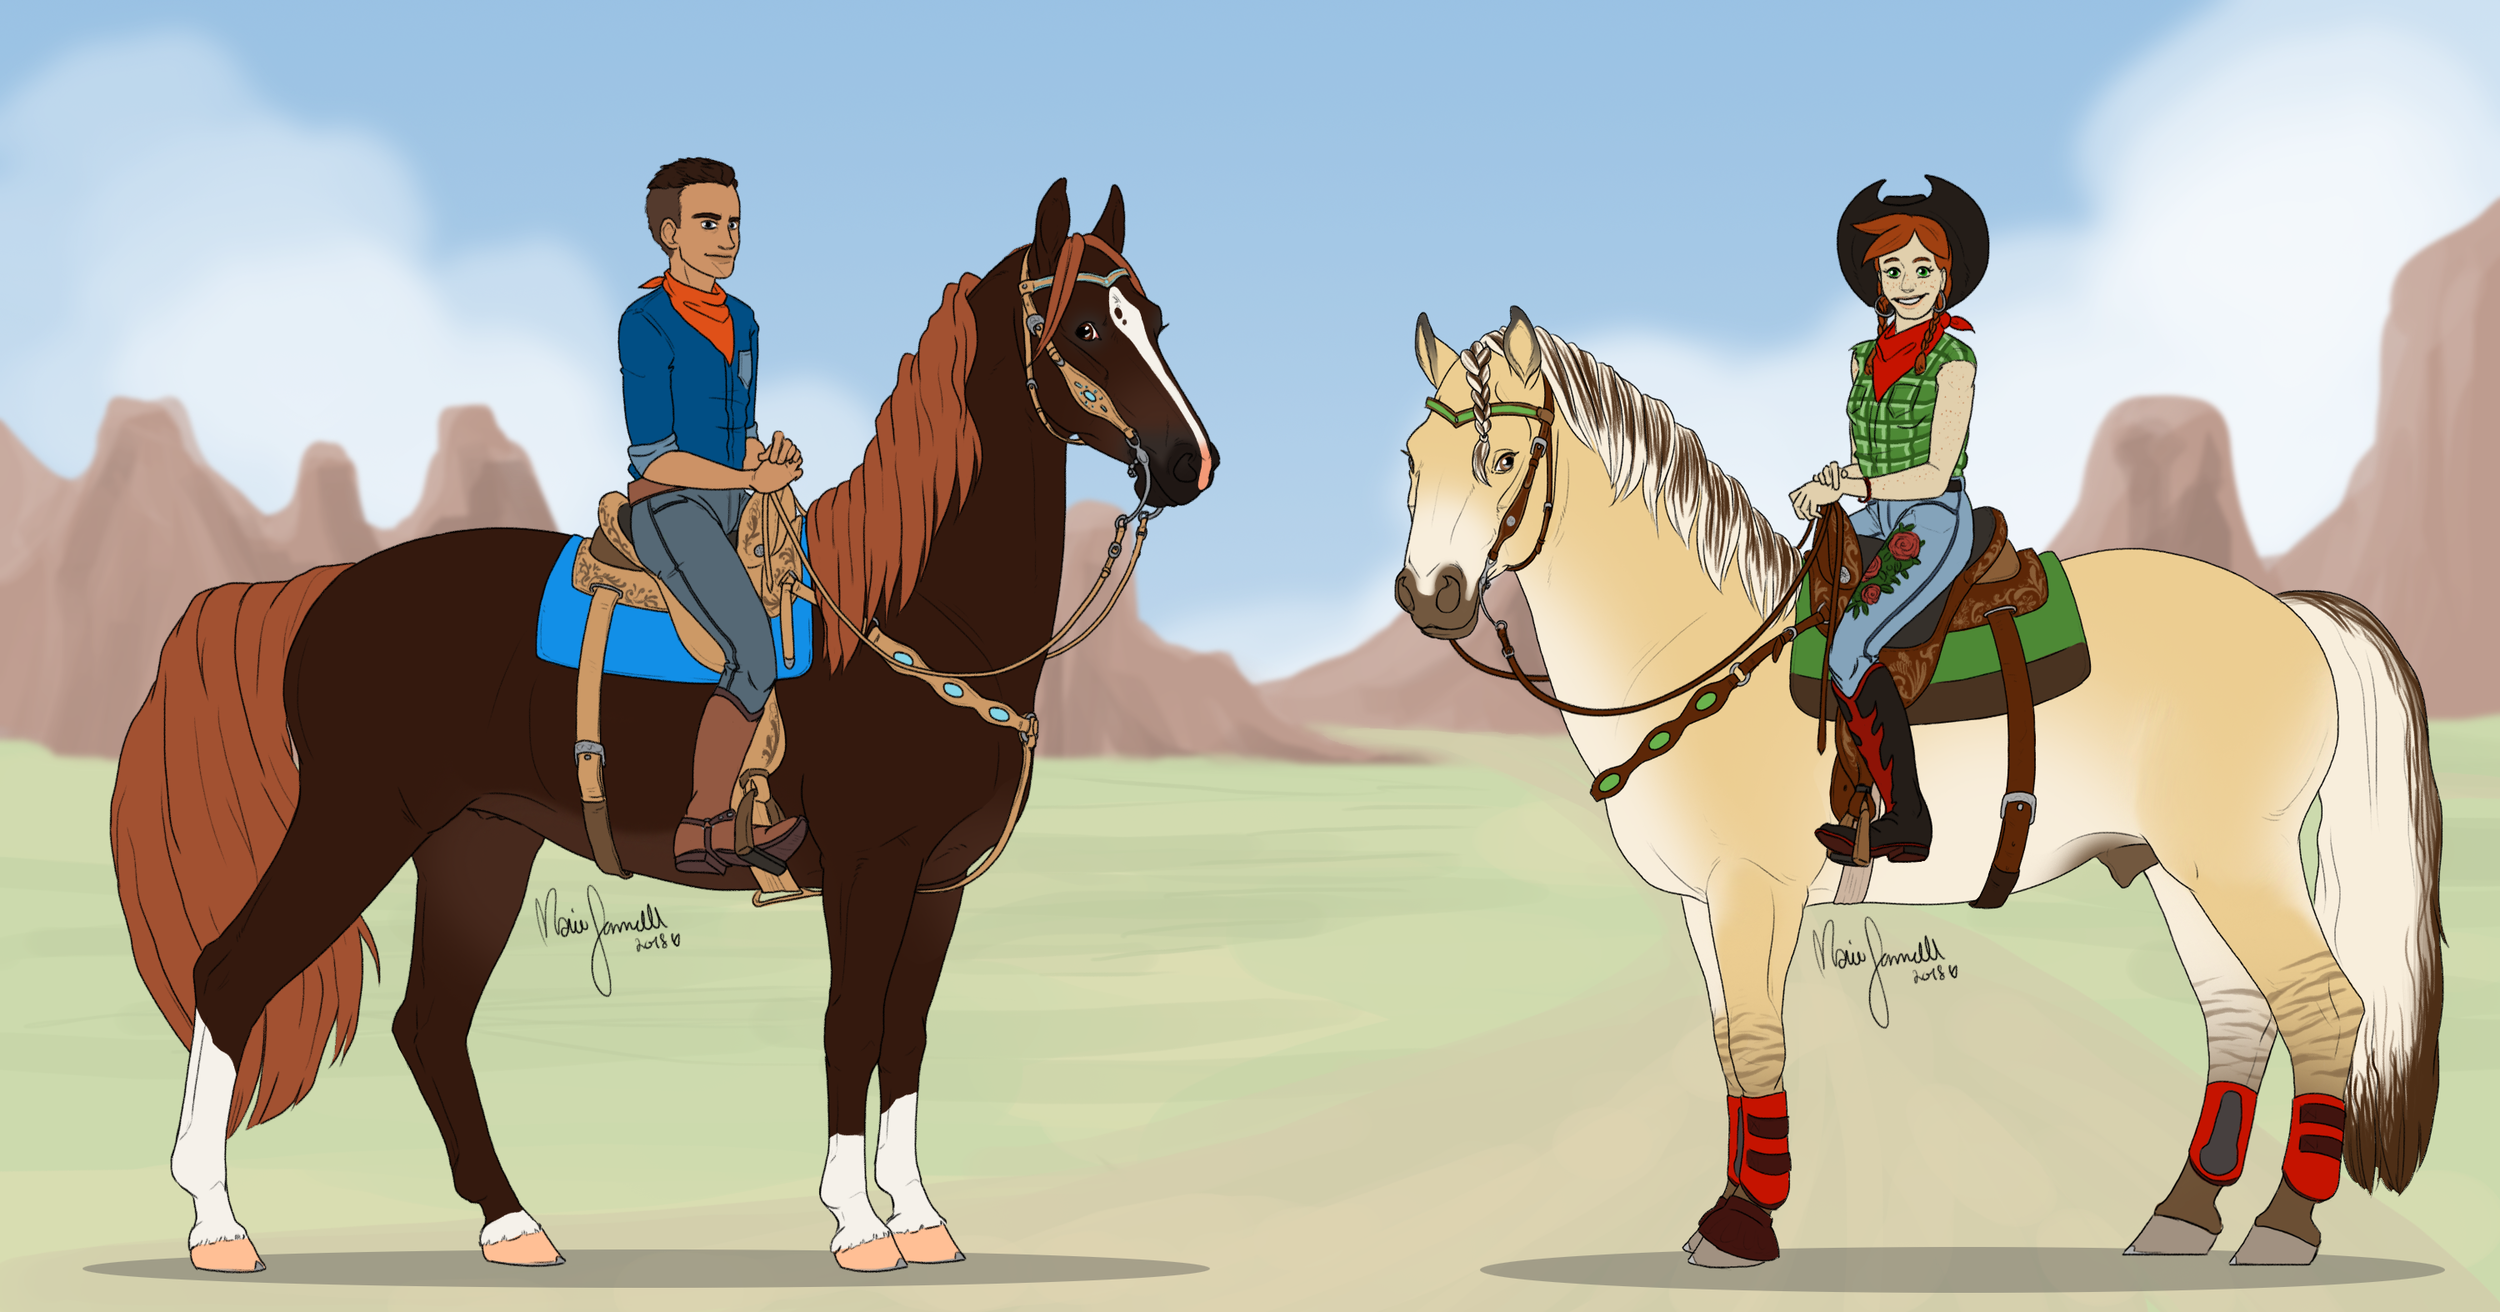 Final concept   Joshua with his morgan horse Firefly and Stella with her fjord horse Dingo